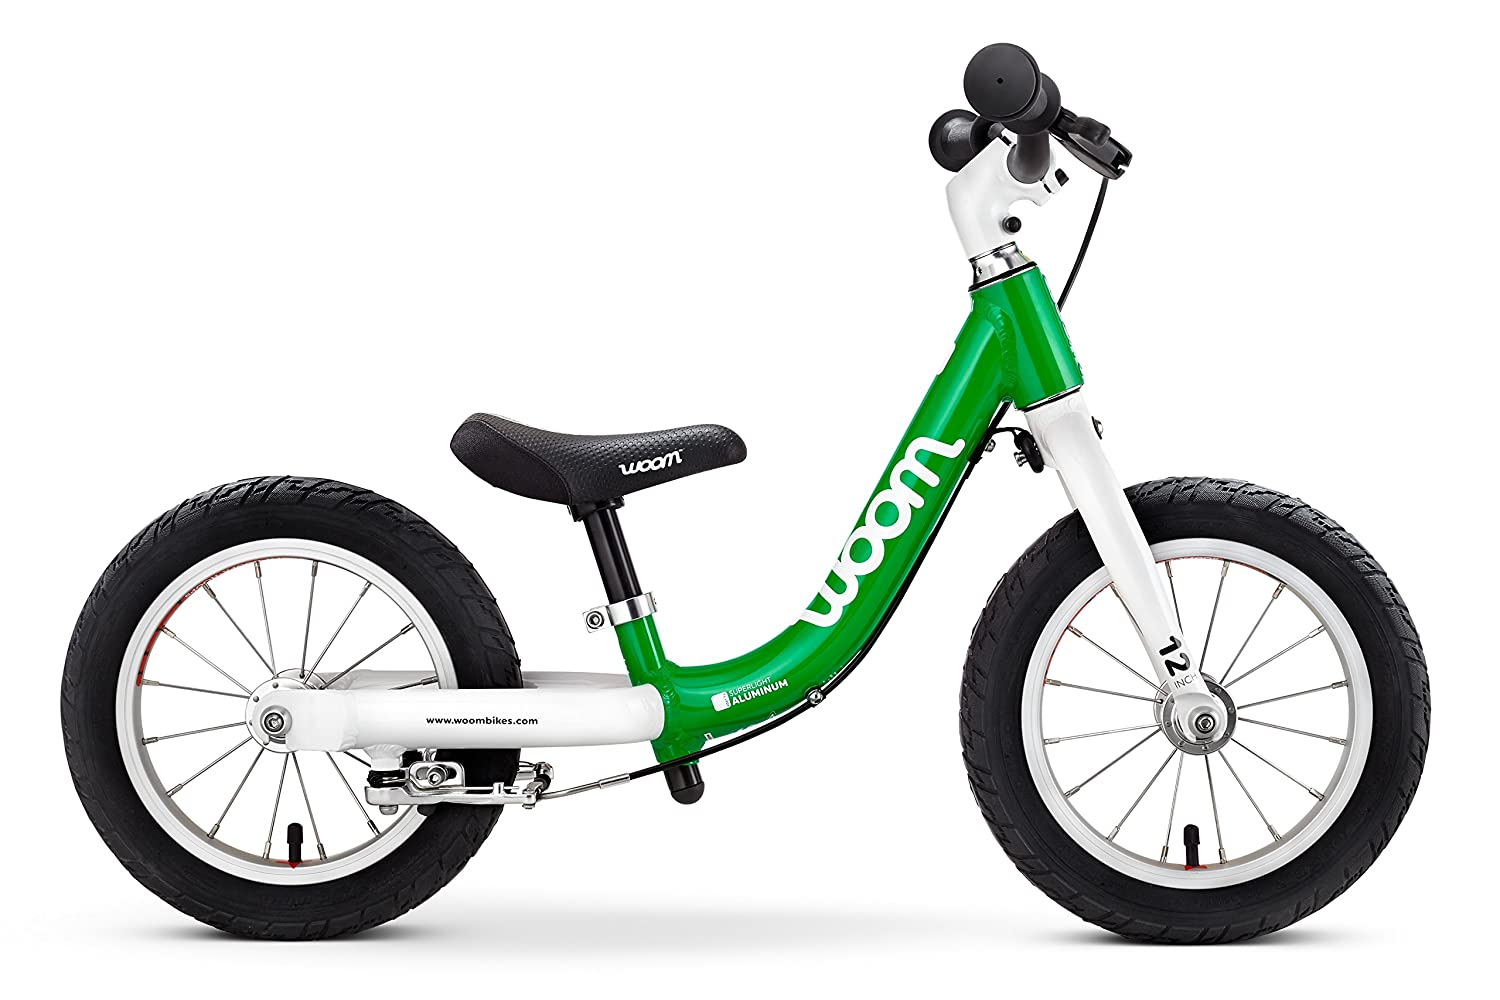 Woom 1 Balance Bike Black Friday Deals 2020